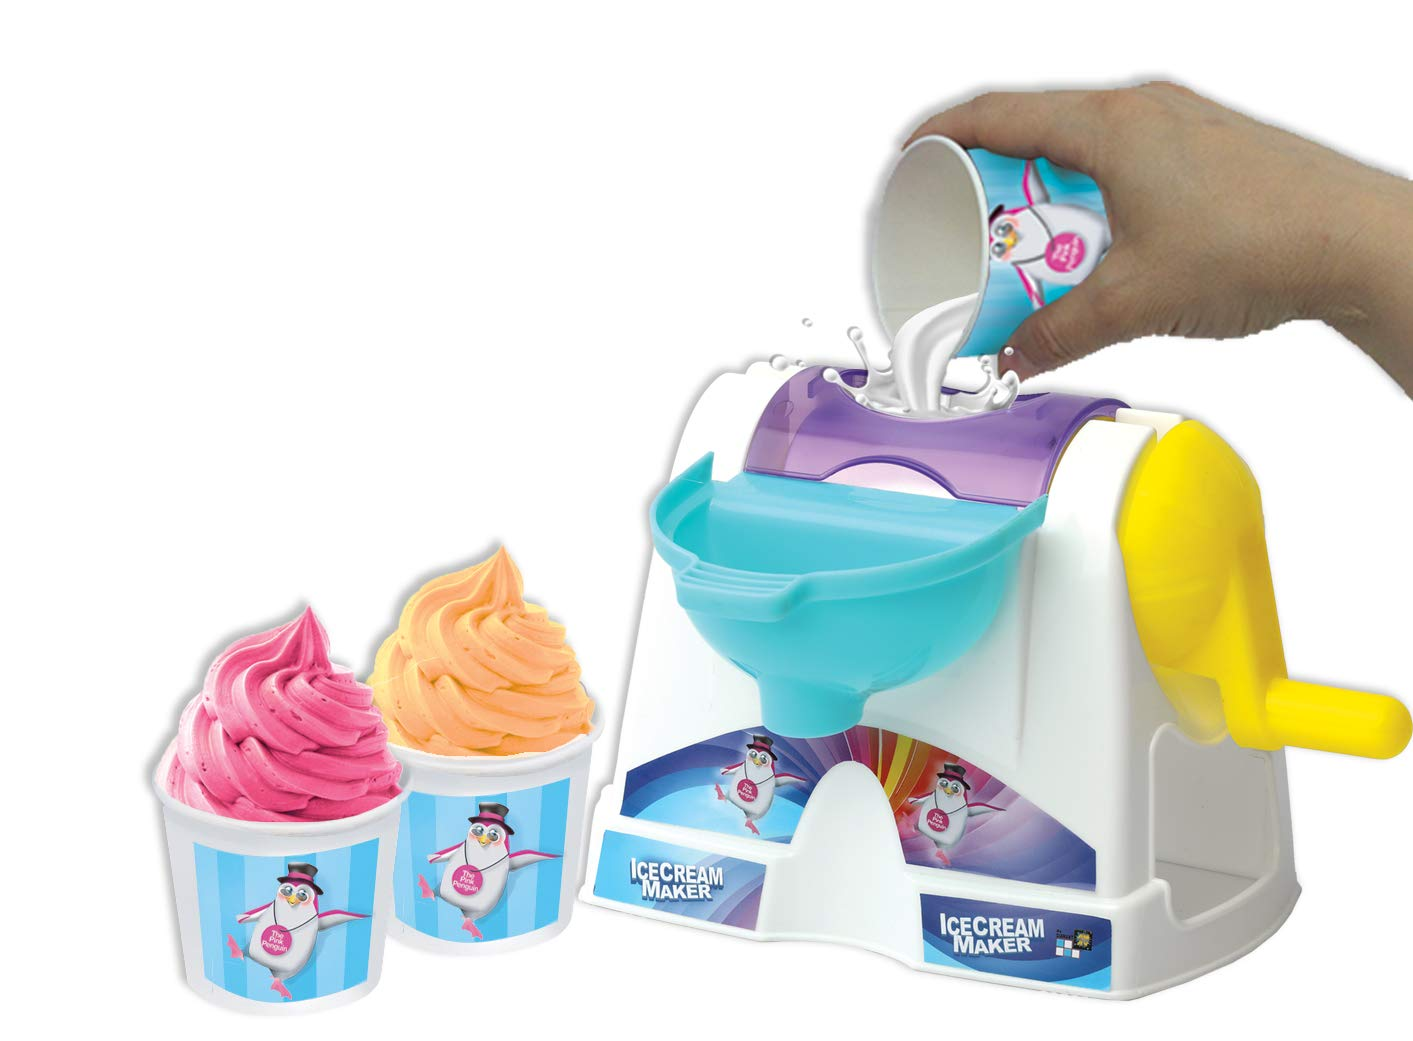 AMAV Toys Ice Cream Maker Machine Toy - Make Your Own Home Made Ice - Cream Multi Color by AMAV Toys